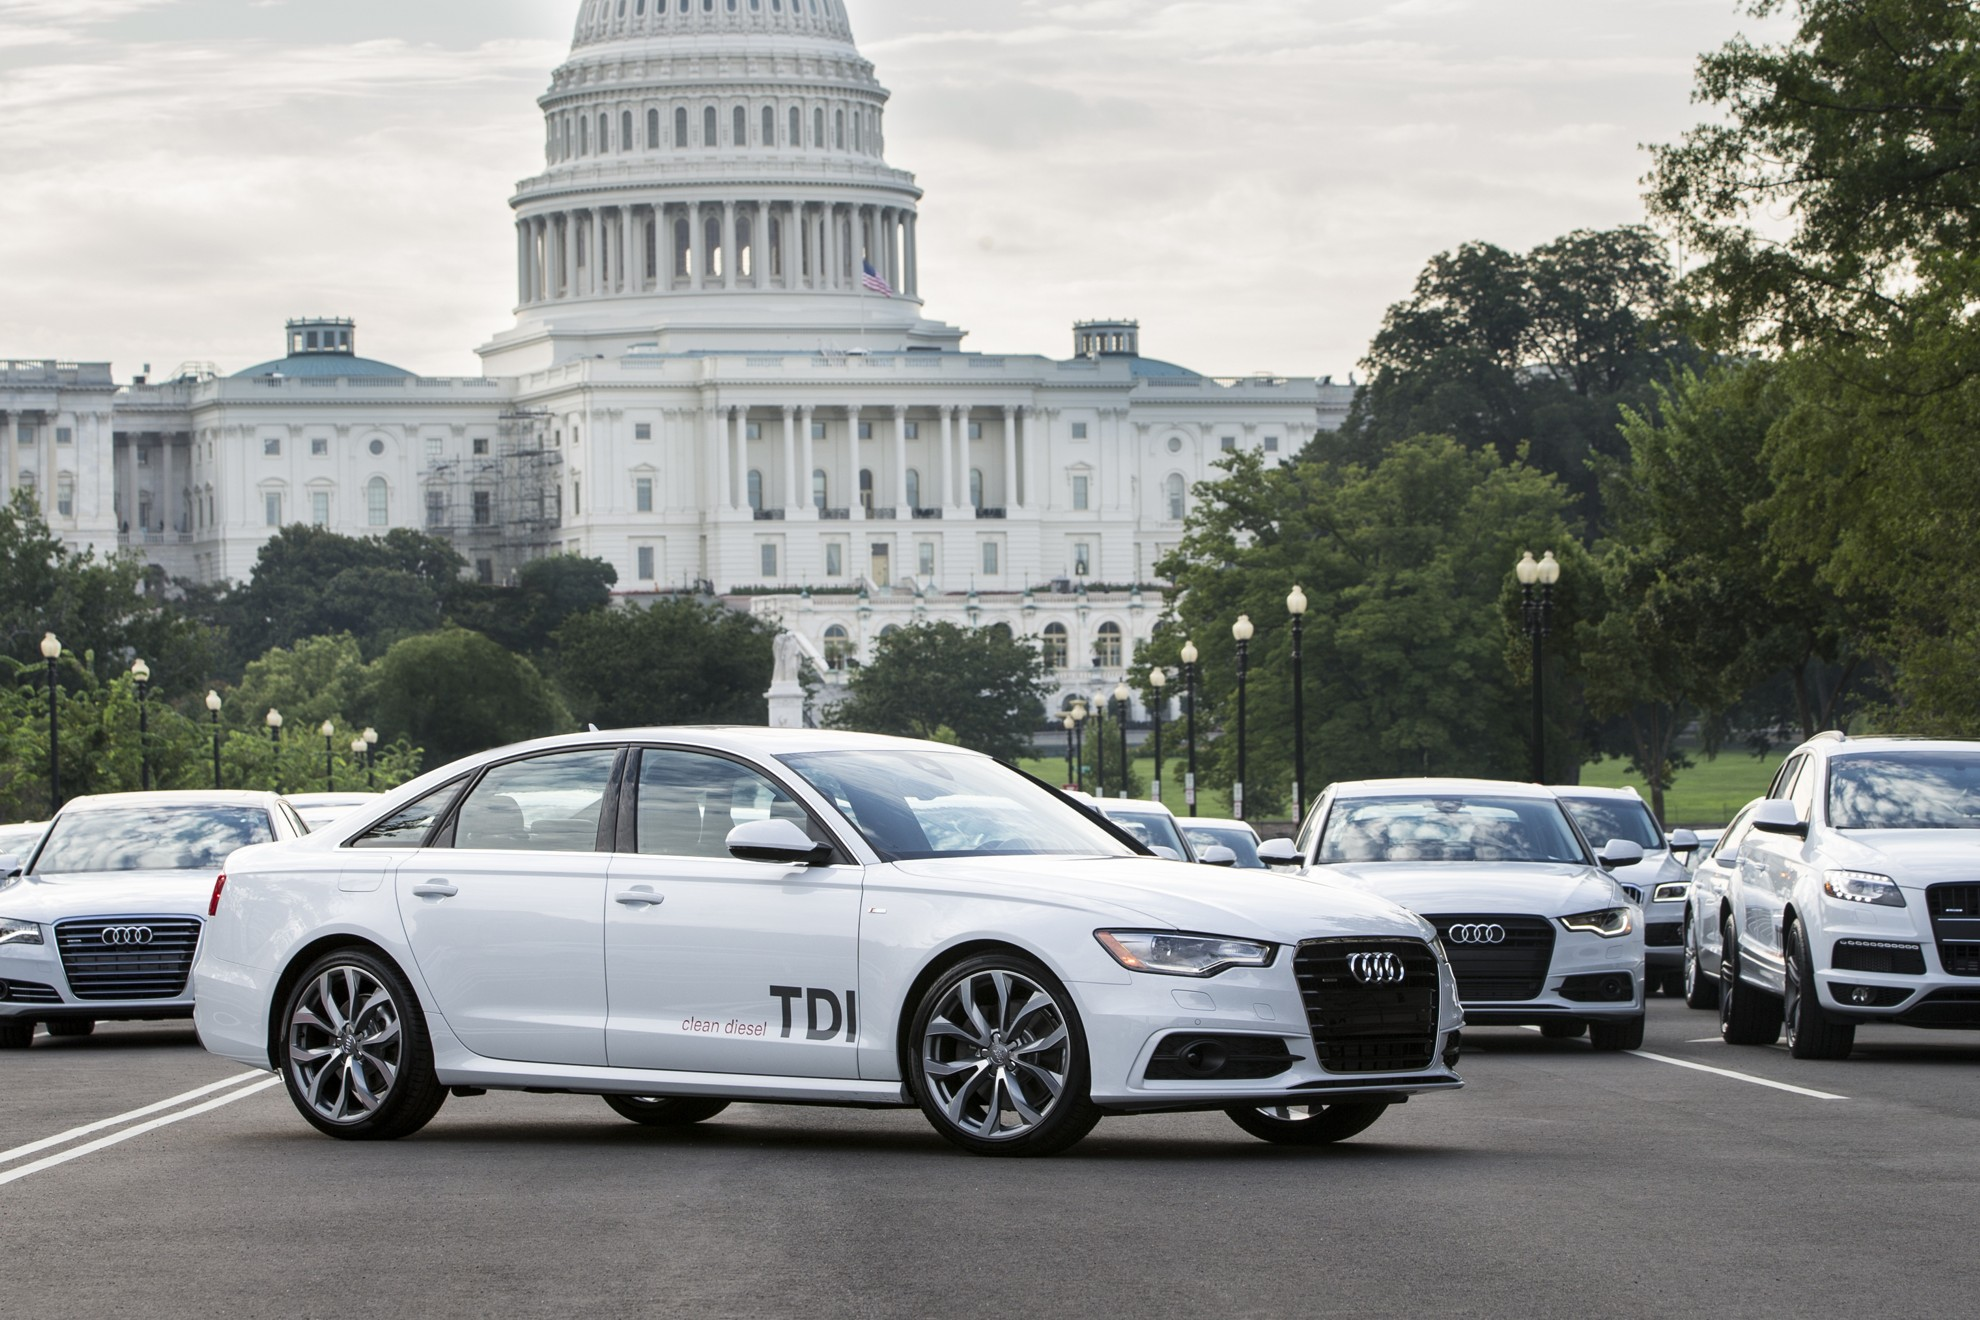 The 2017 Audi A6 Sedan And S6 Sport Received Highest Ratings Possible In U S Government Testing Achieving An Impressive 5 Star